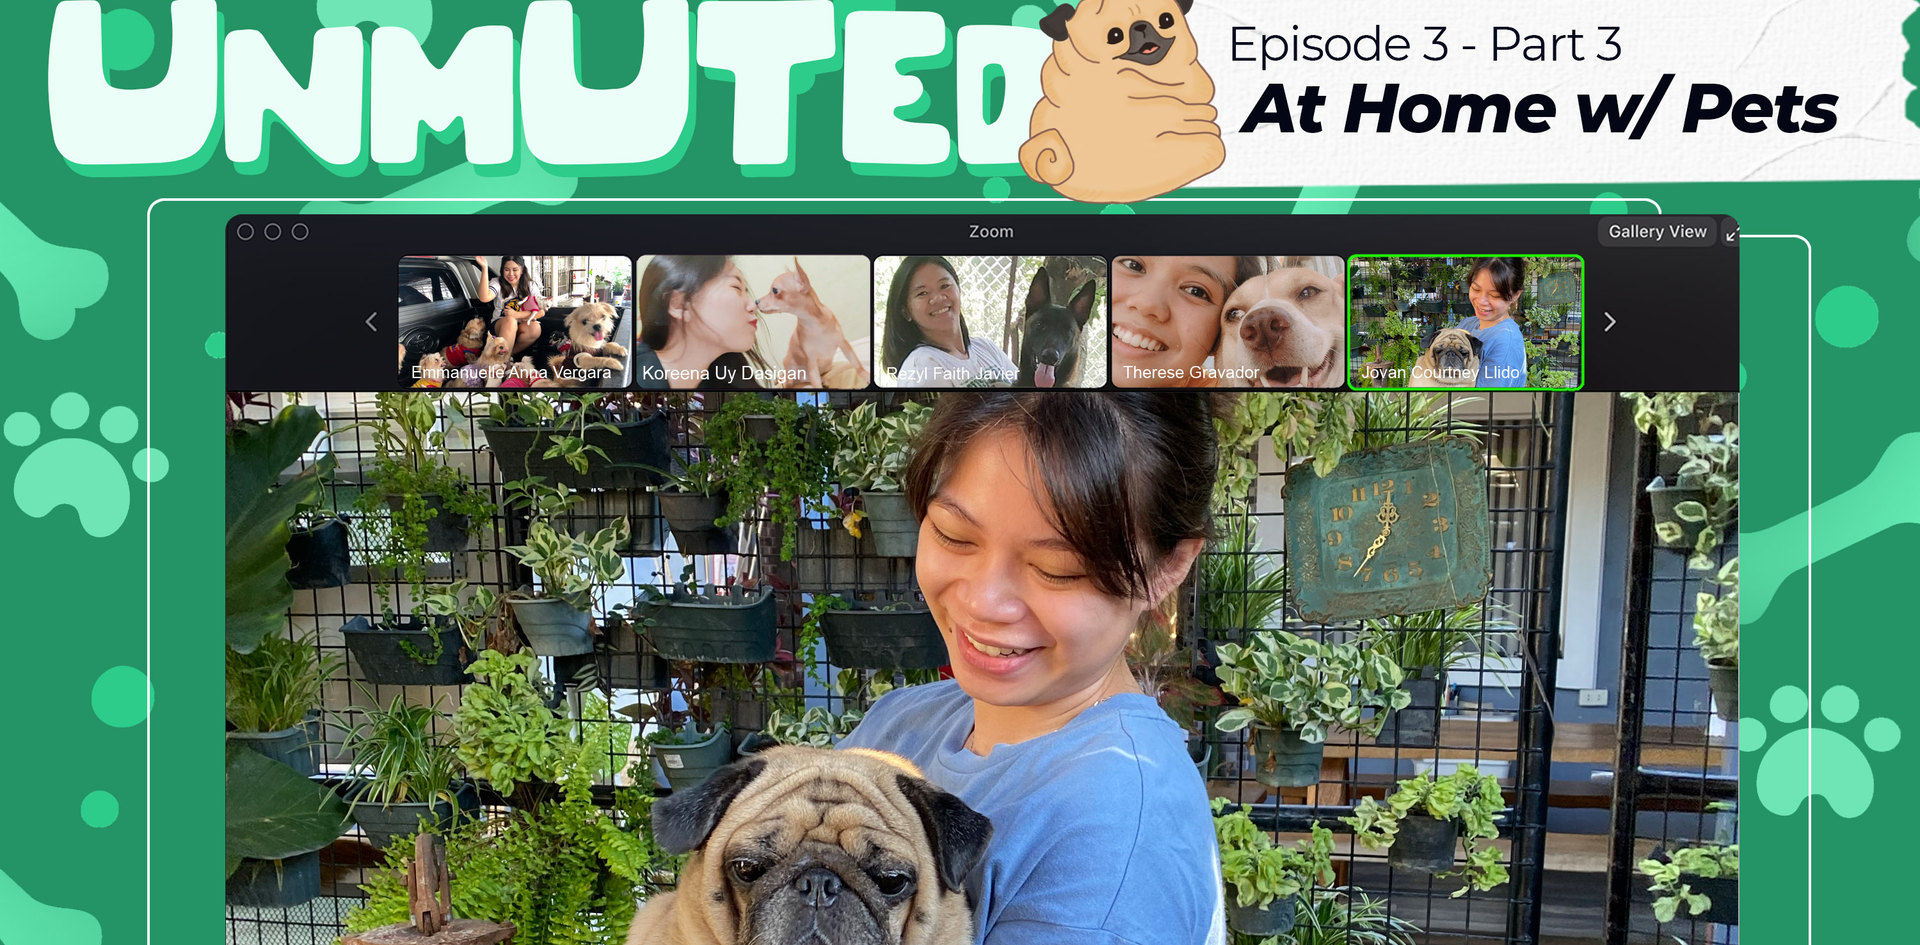 Episode 3.3 - At Home with Pets